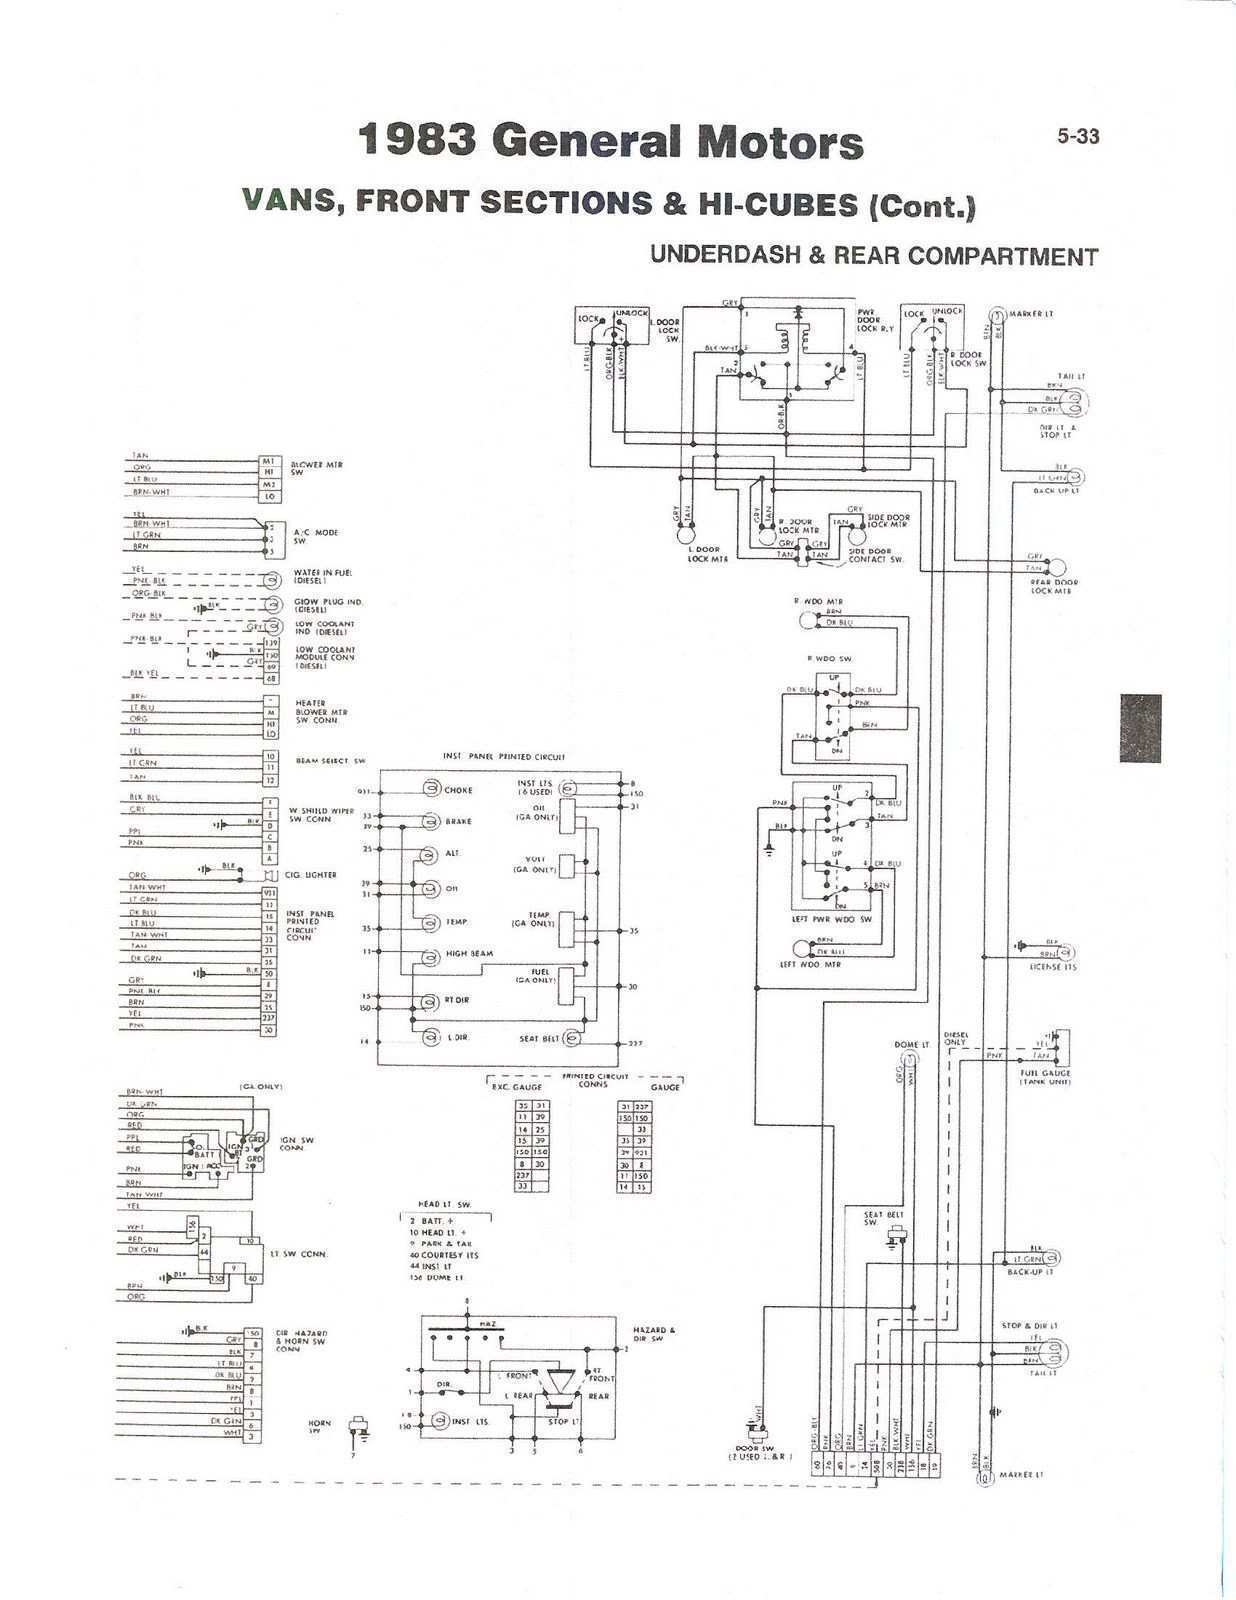 Fleetwood Discovery Wiring Diagram - Most Searched Wiring Diagram - Fleetwood Motorhome Wiring Diagram Fuse